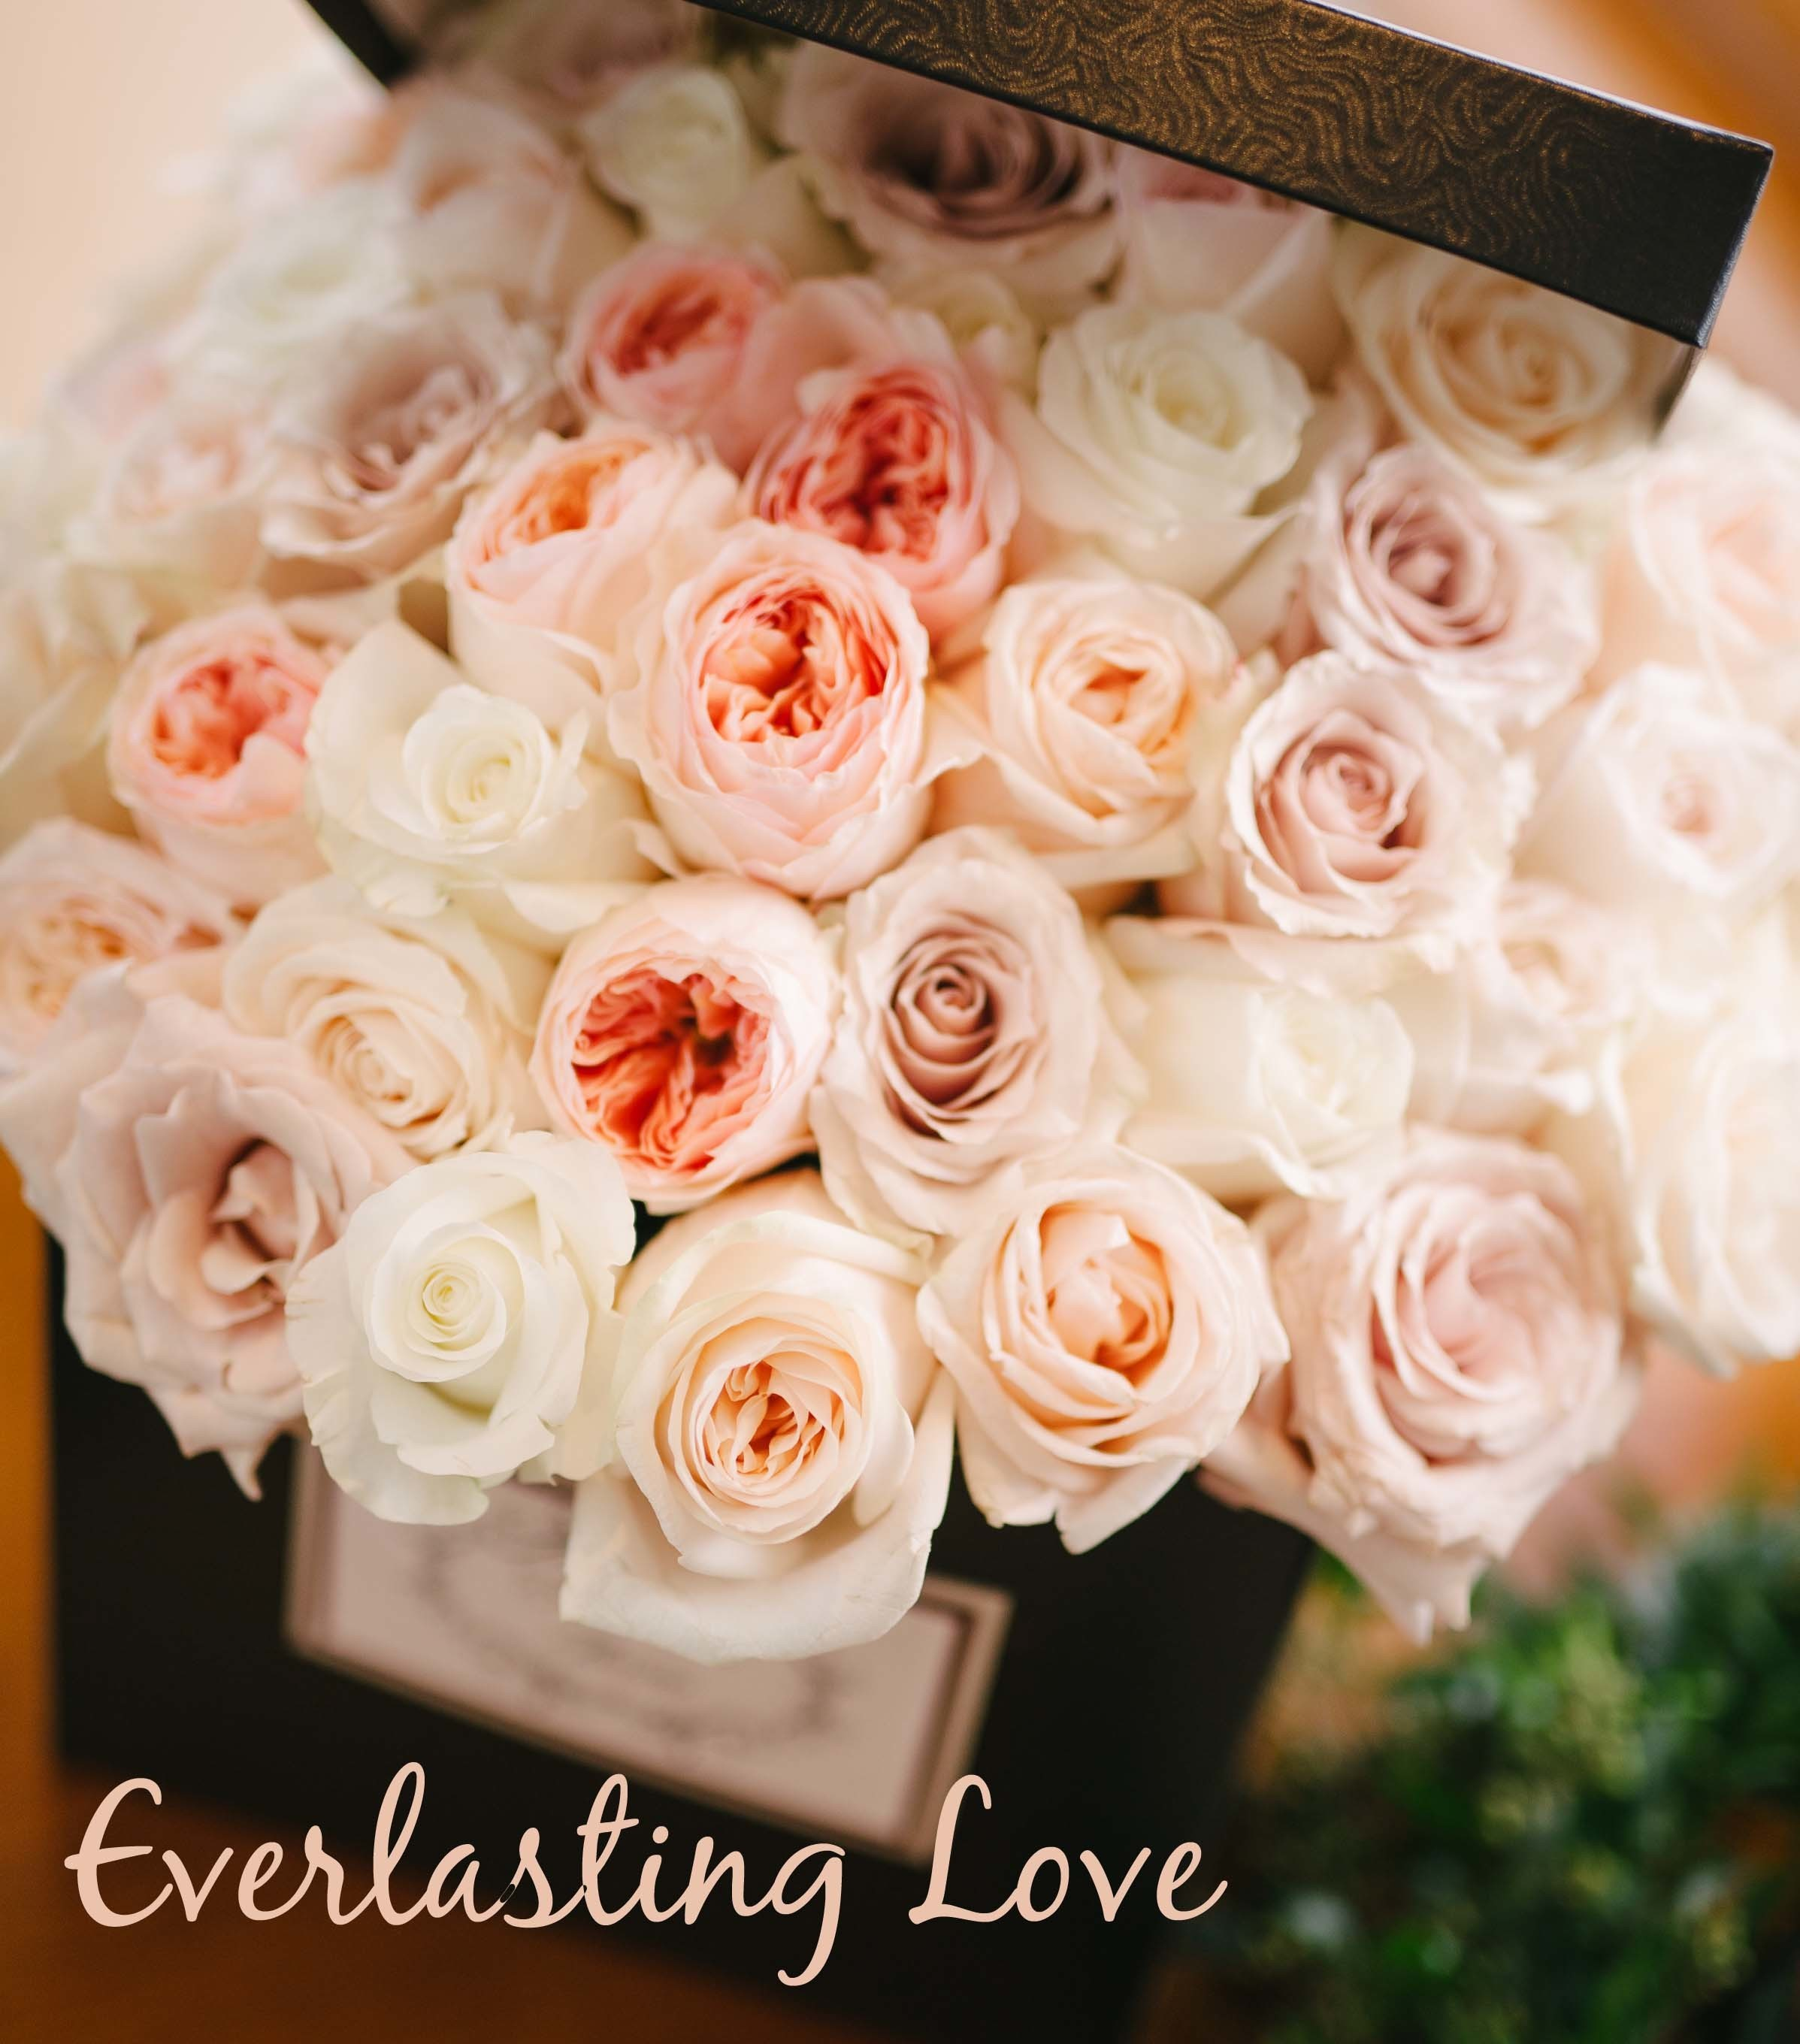 Everlasting Love - When she is your forever love! V40026